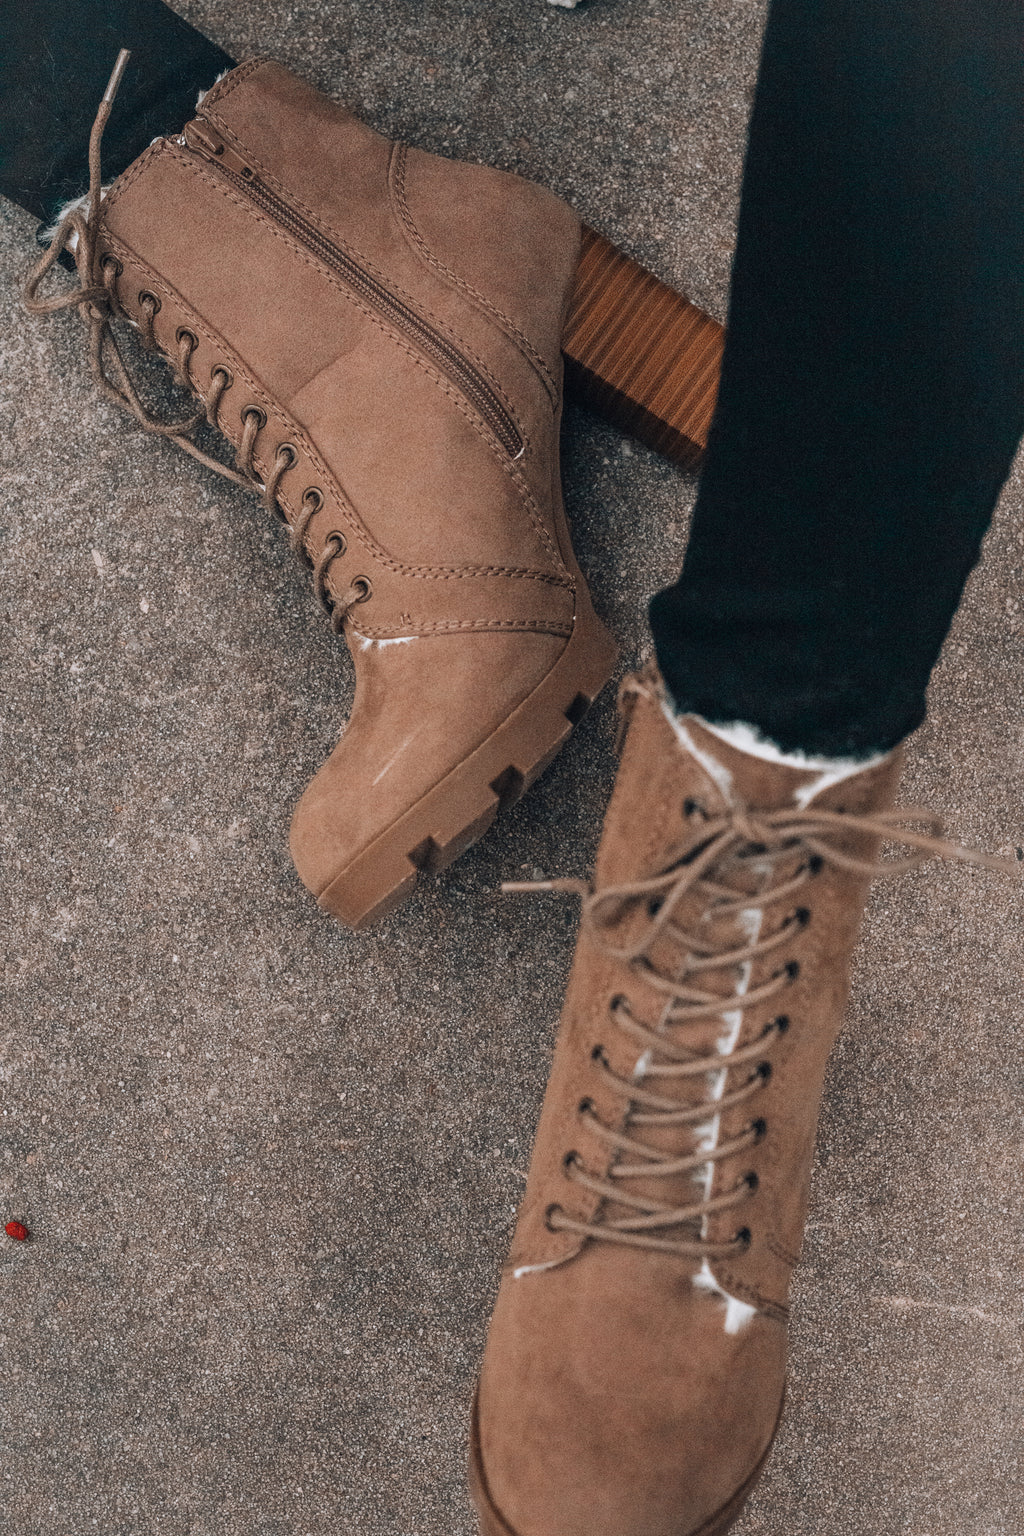 Fuzzy Feels Lace Up Boots - FINAL SALE